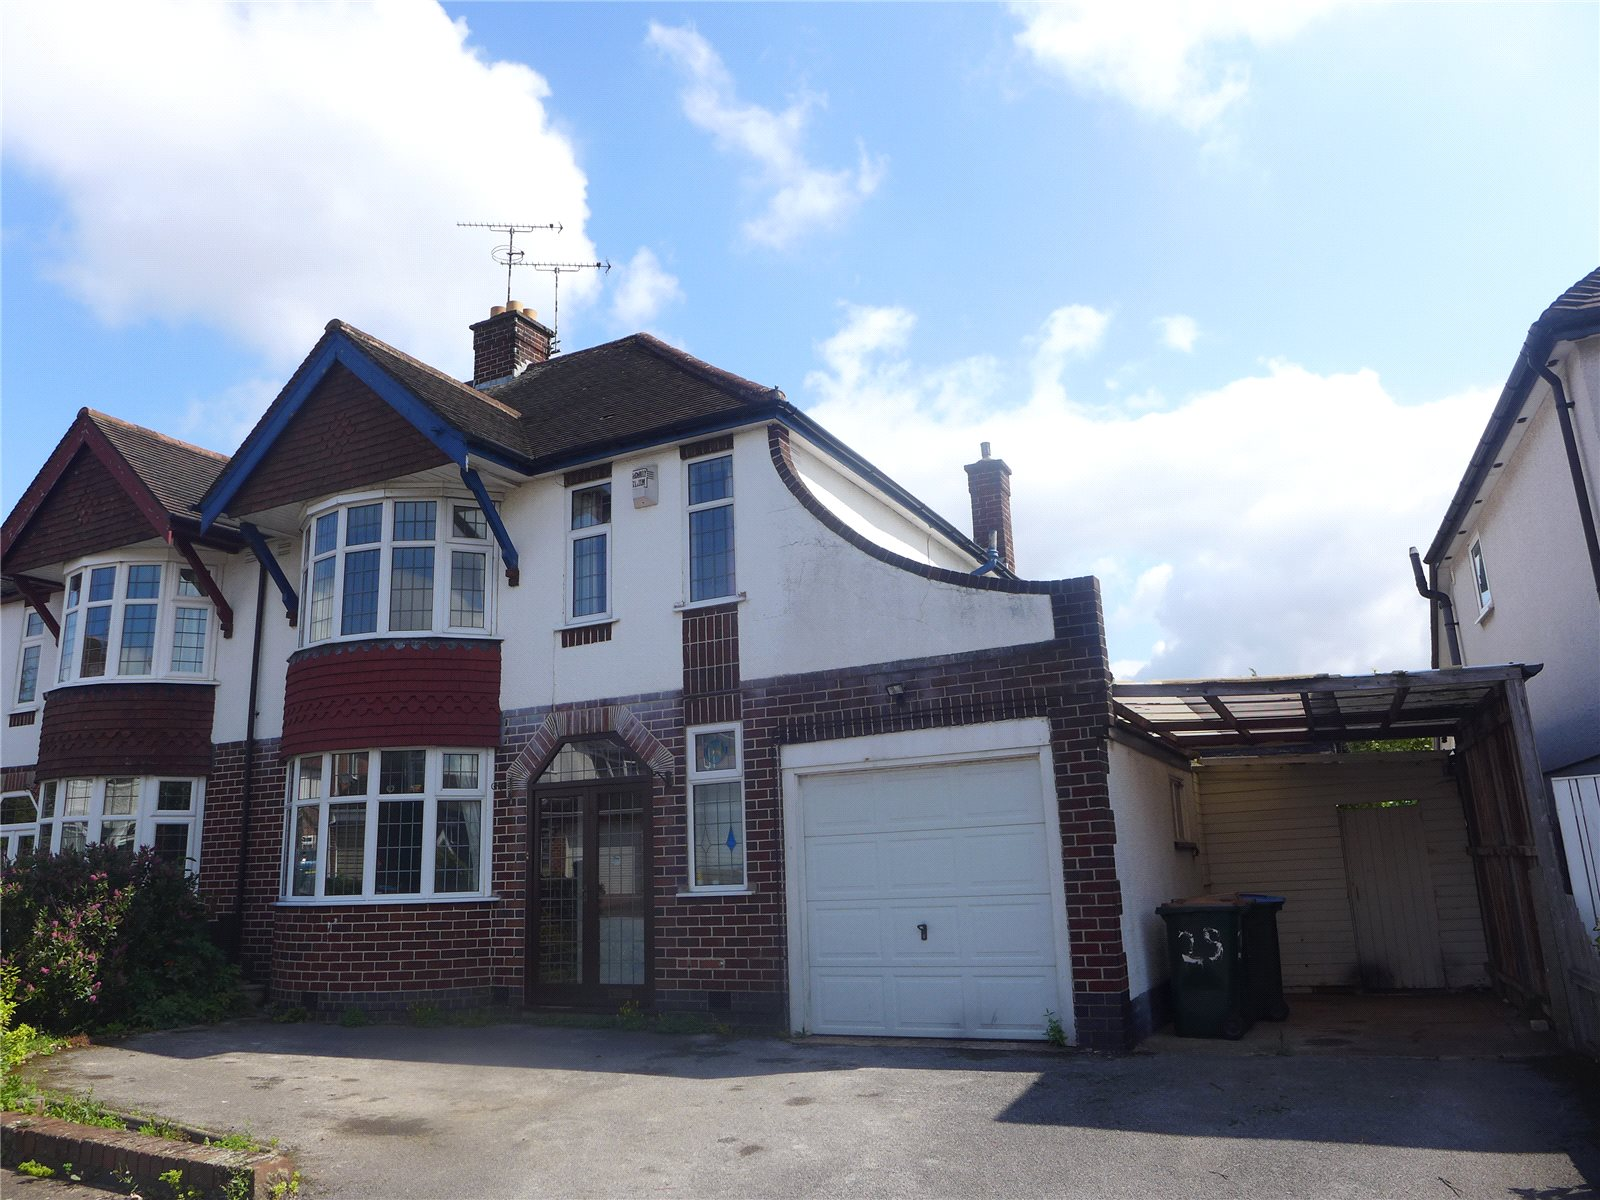 Orchard Crescent, Cheylesmore, Coventry CV3